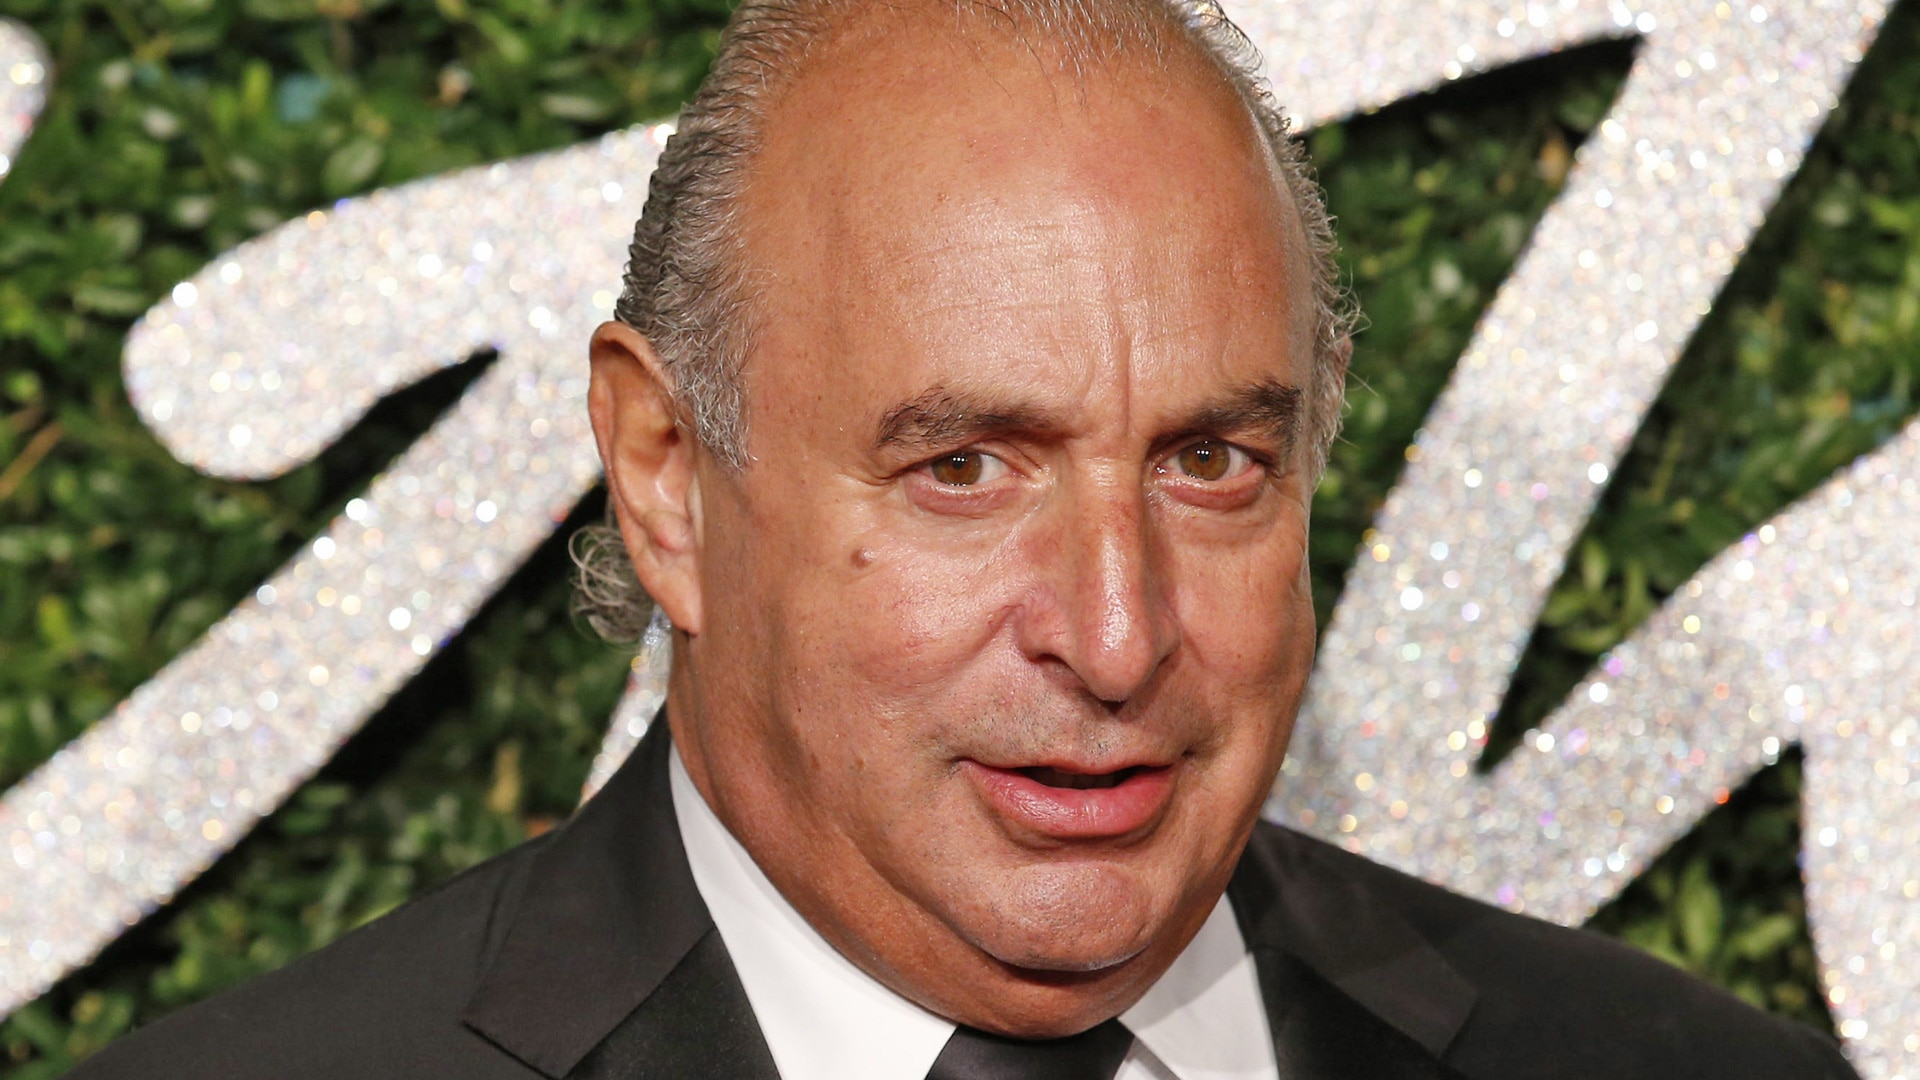 Sir Philip Green: The Full Story